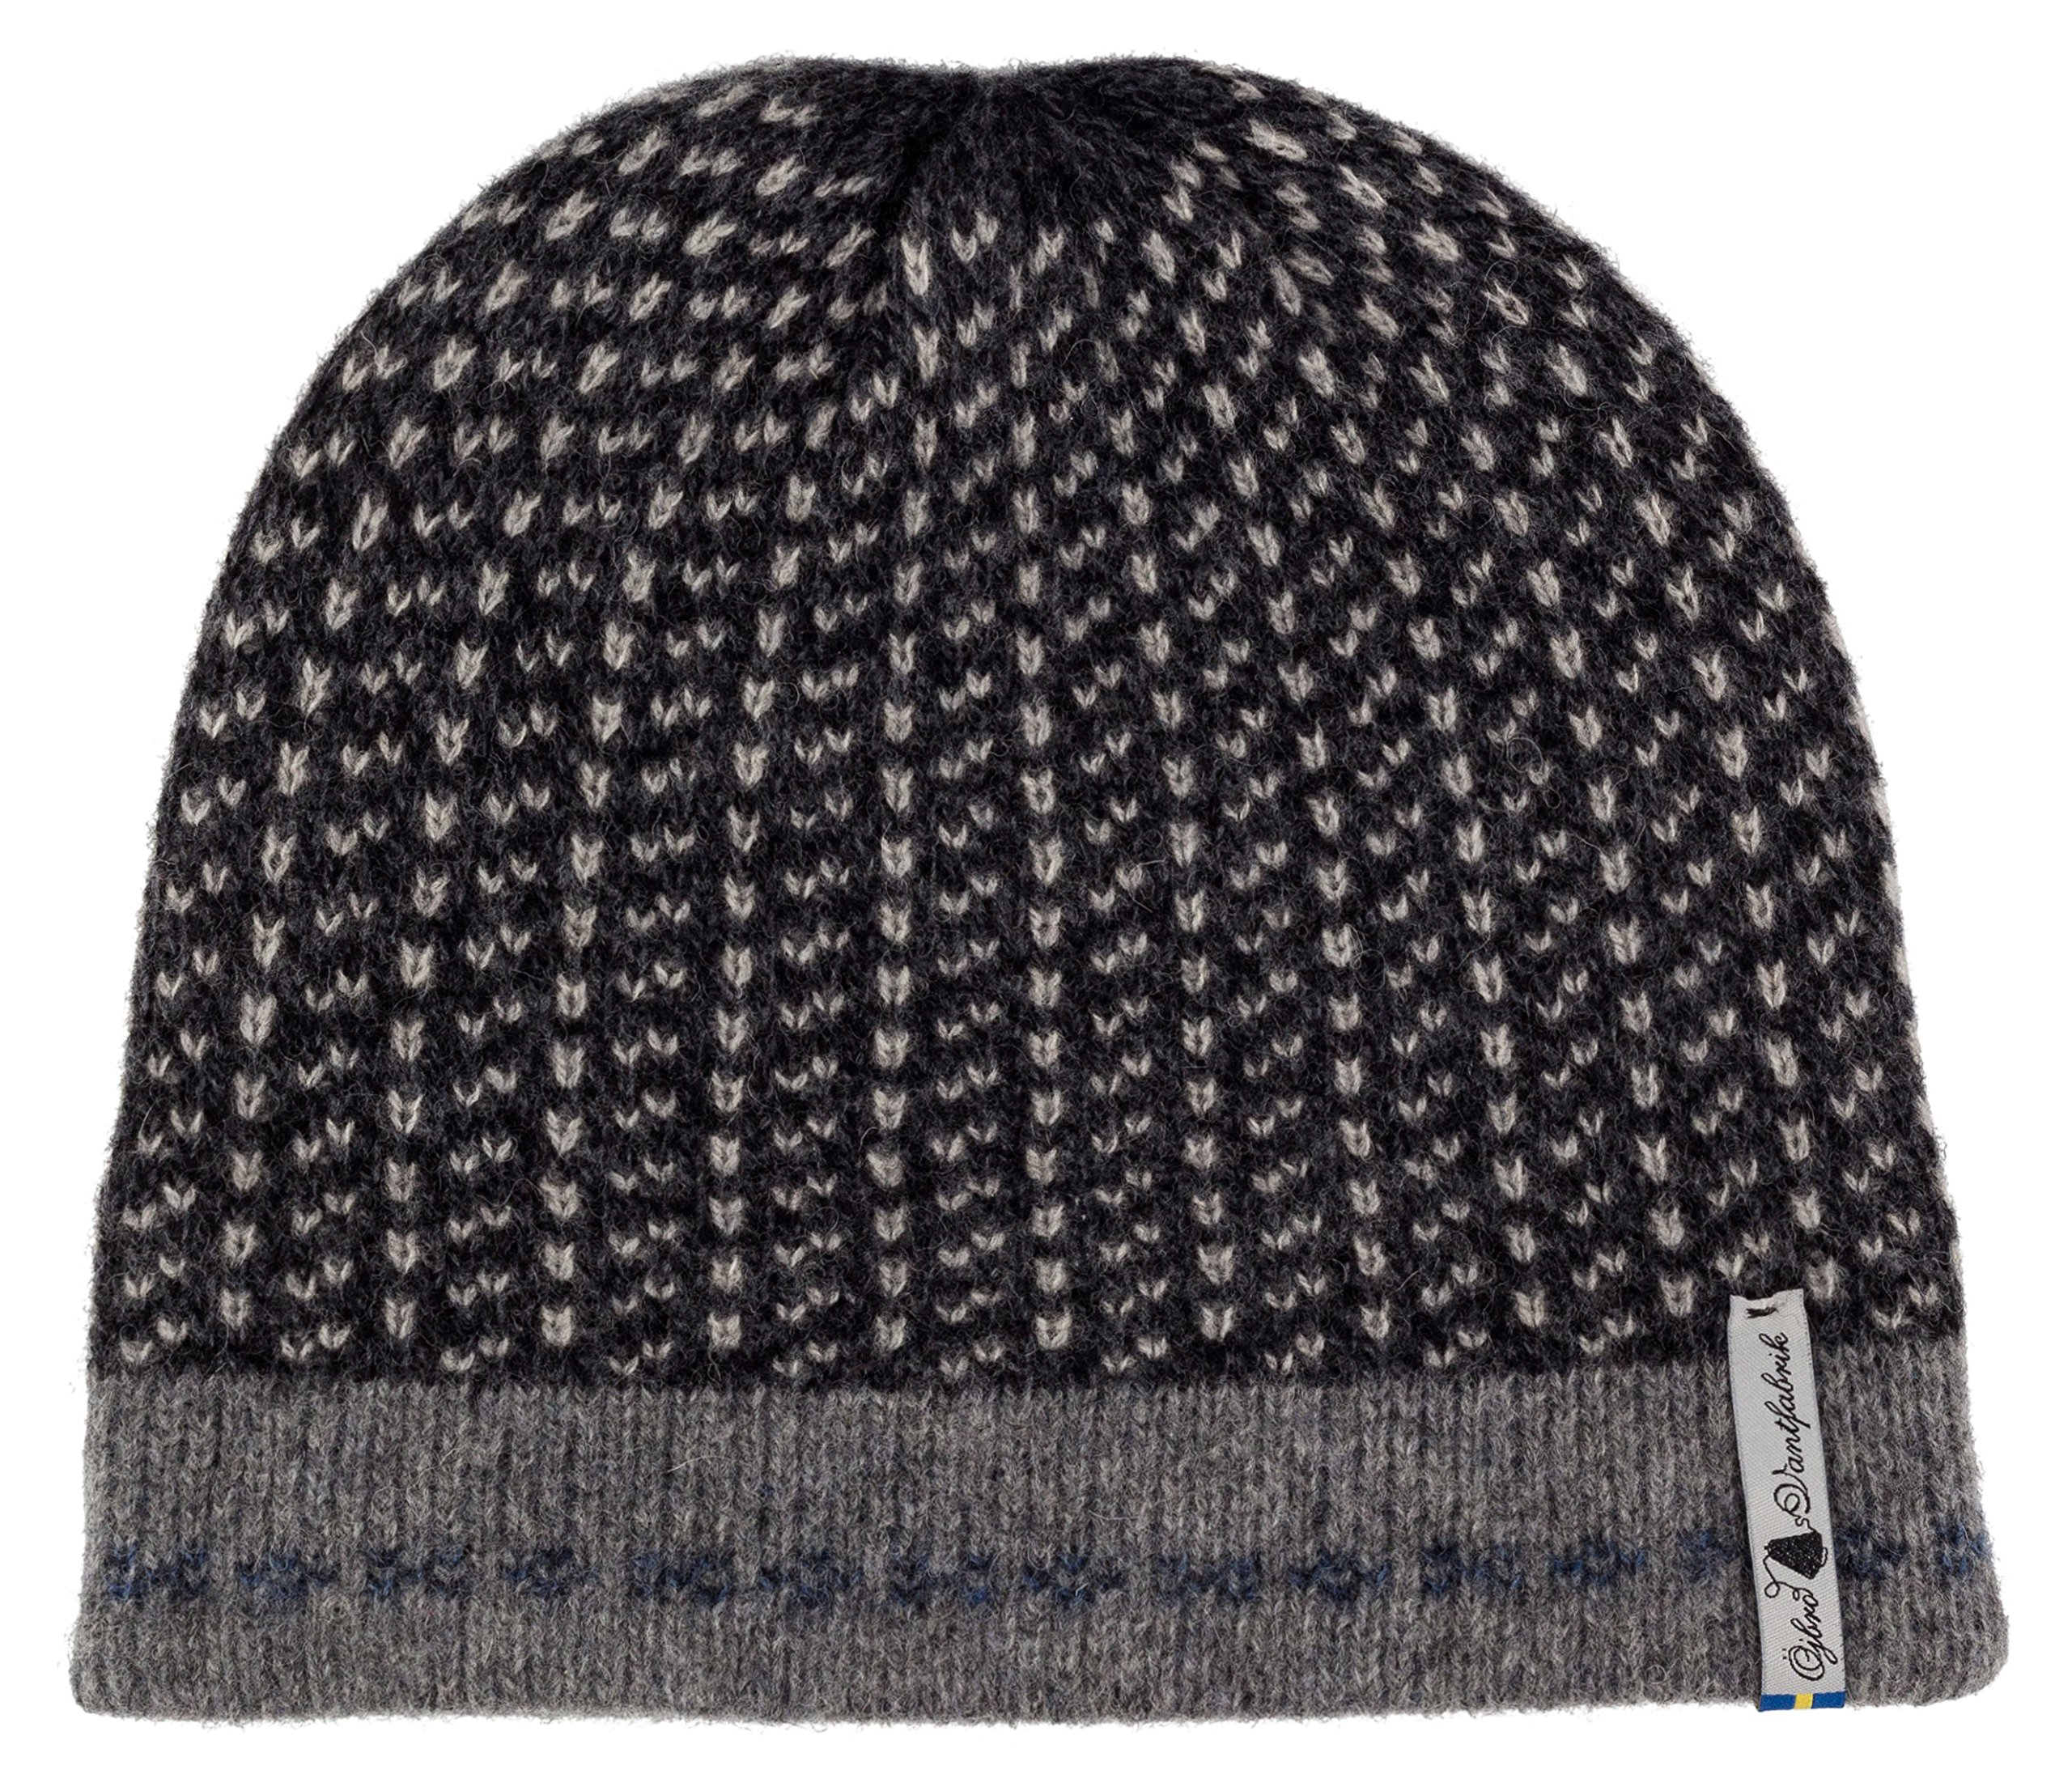 Swedish 100% Merino Wool Warm Soft and Thick Beanie Hat Cap (Skaftö Sot) by ÖJBRO VANTFABRIK (Image #1)